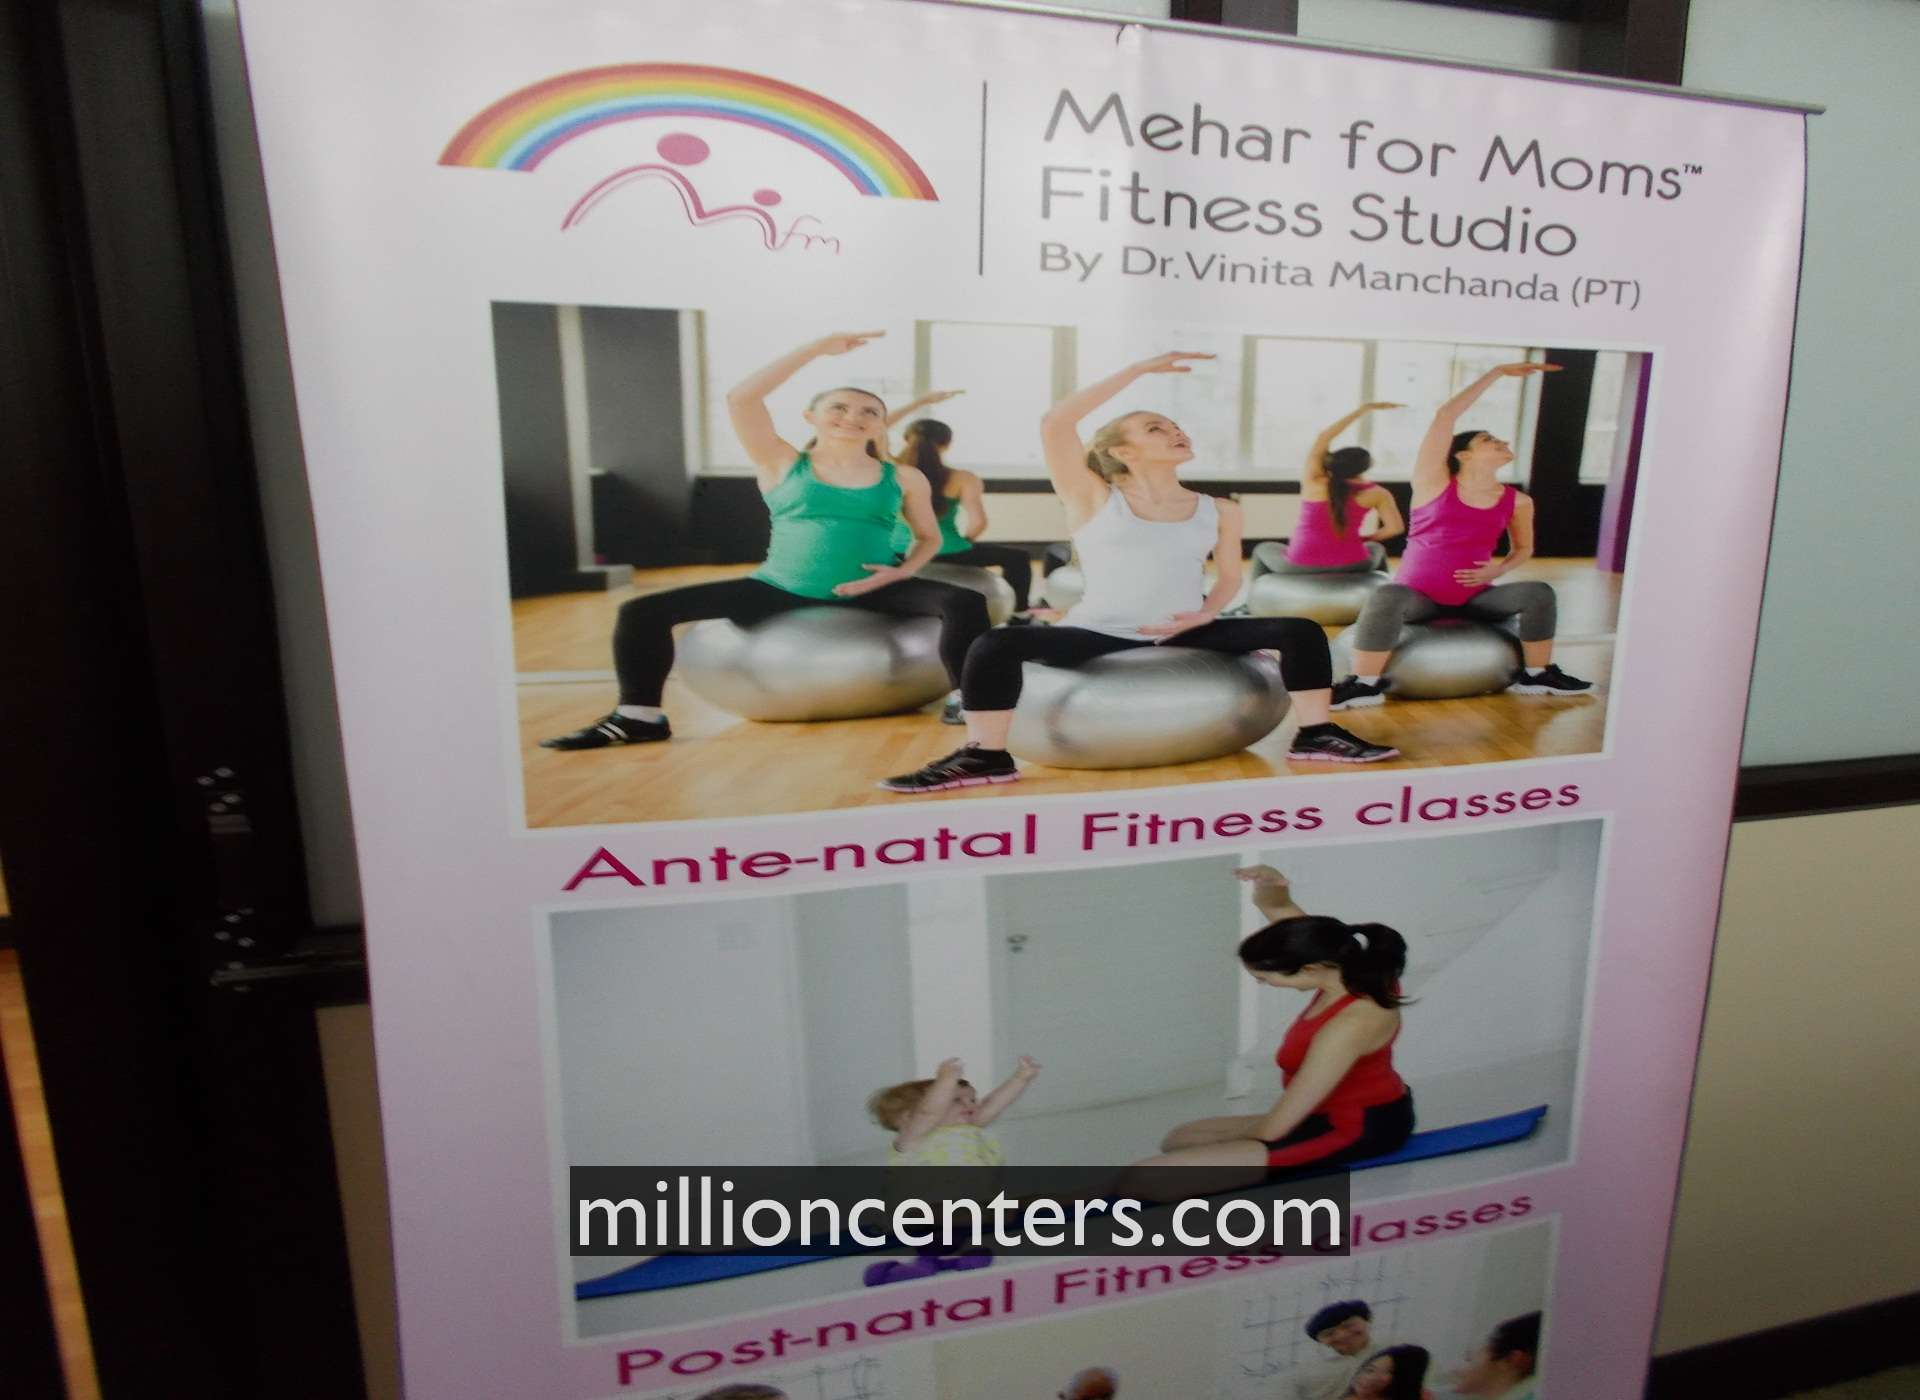 Mehar for Moms Fitness Studio